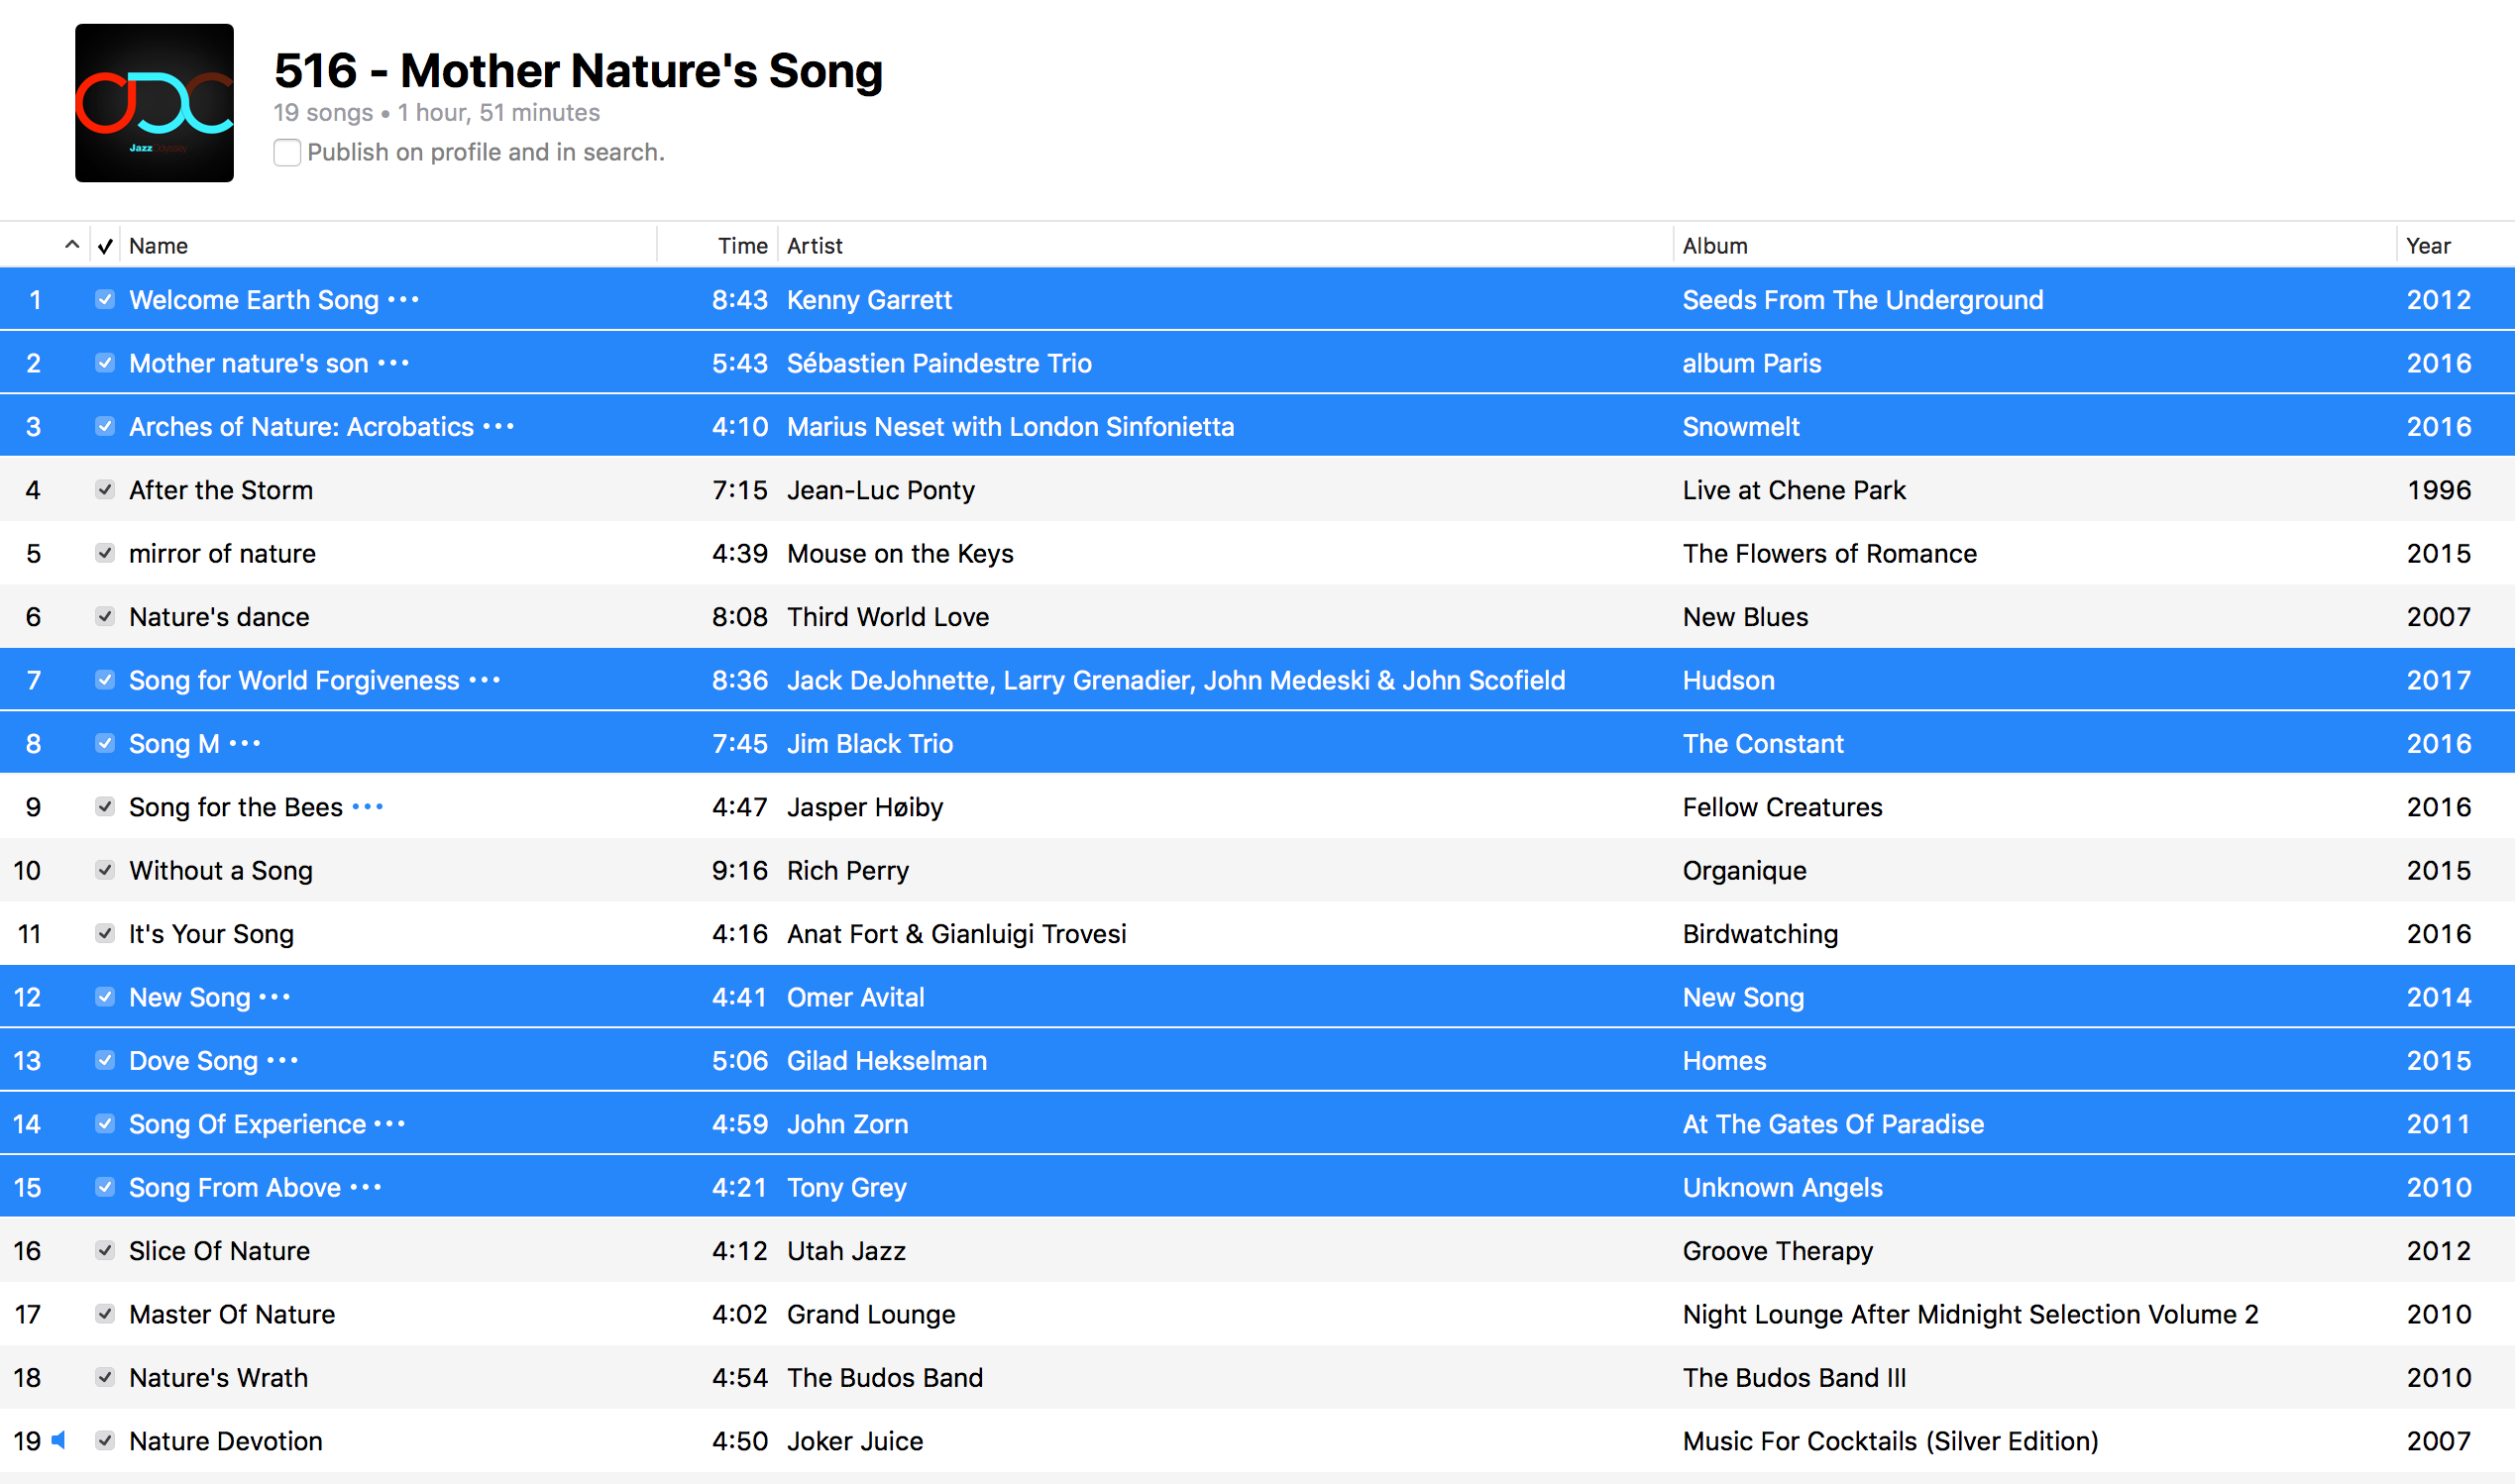 Jazz ODC #516 - Mother Nature's Song - Playlist